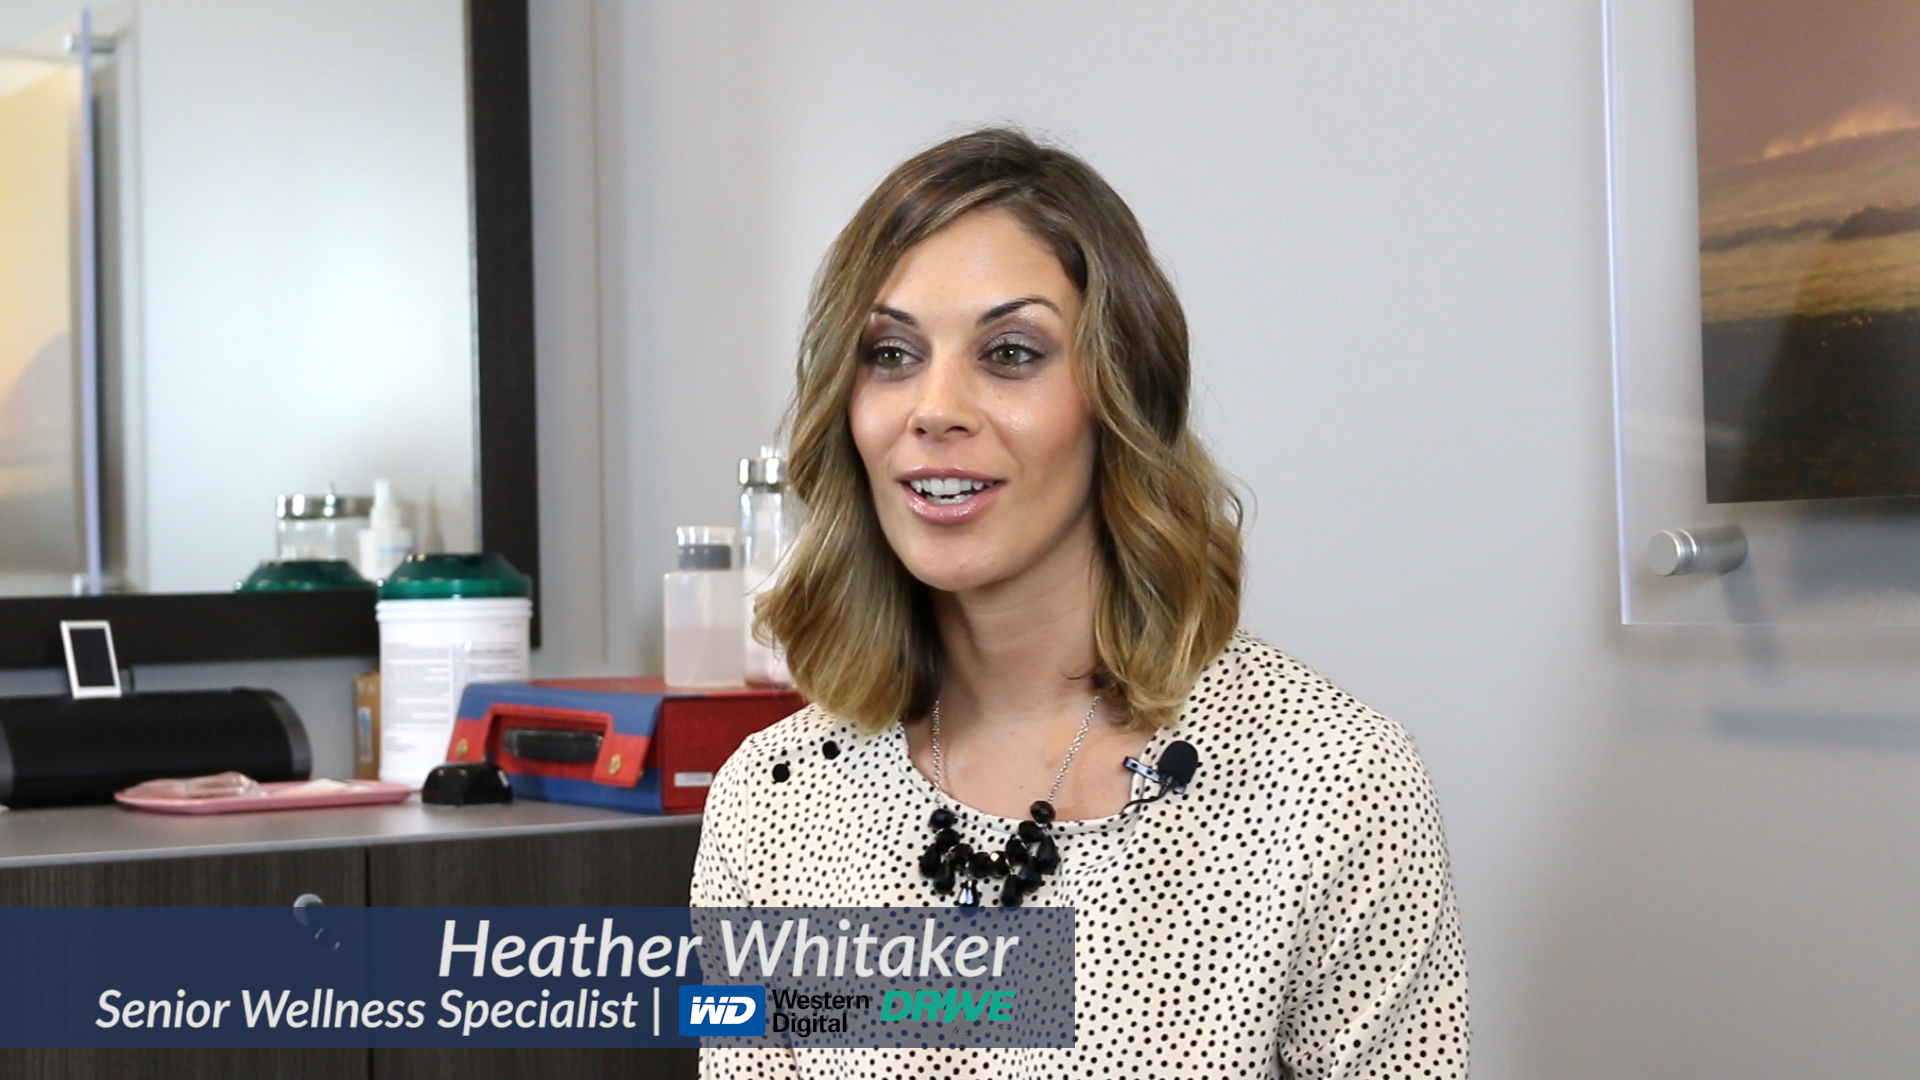 Heather Whitaker, the senior wellness specialist